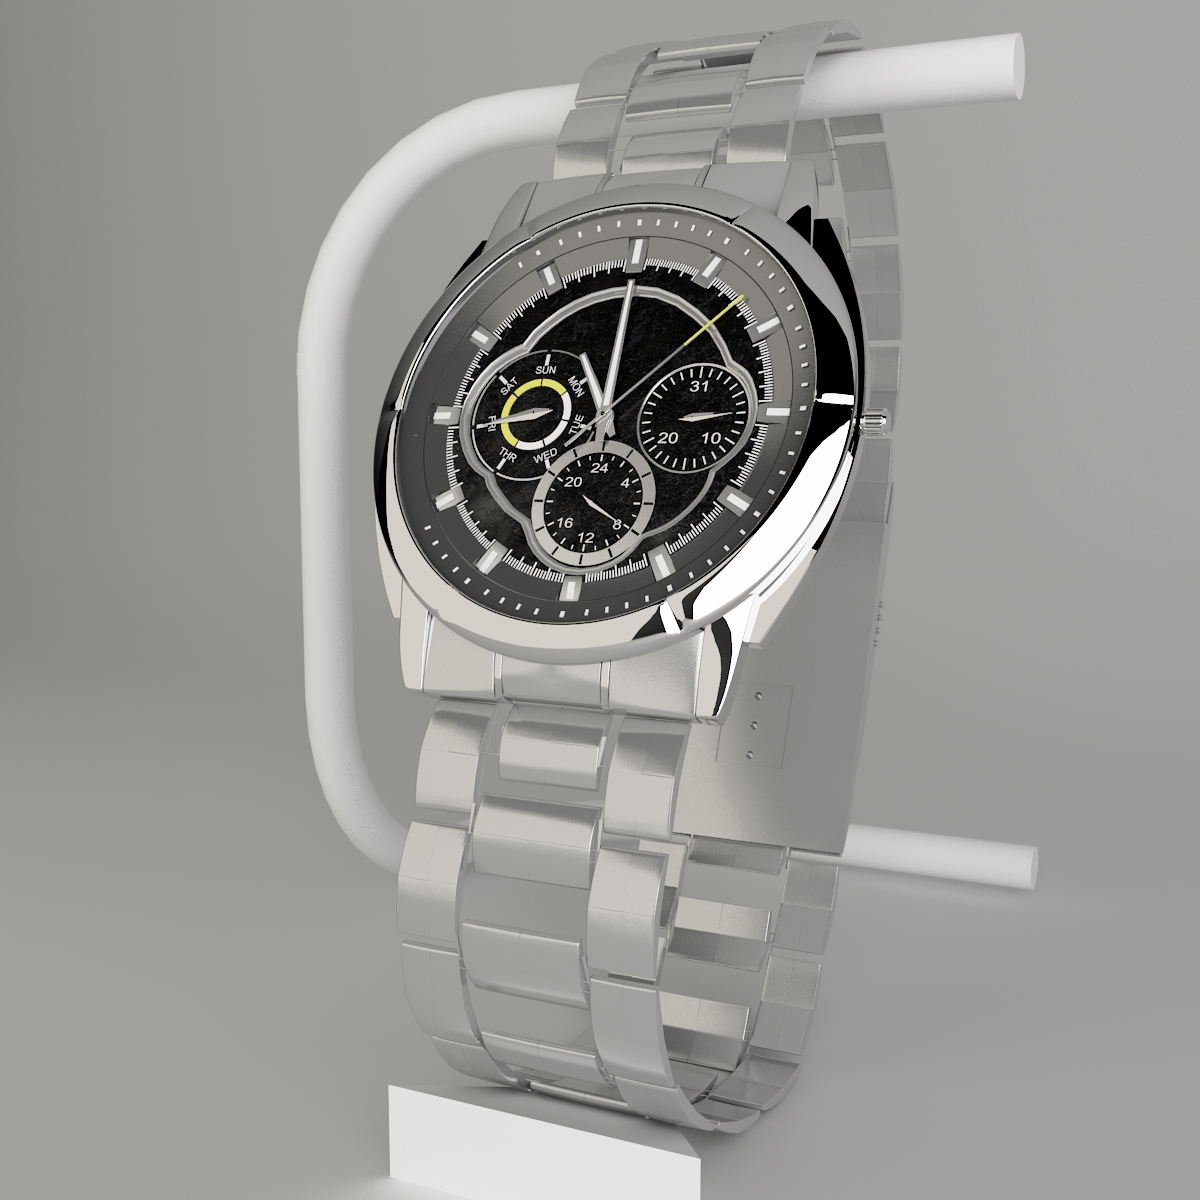 Casio Edifice Wrist Watch - 3DOcean Item for Sale